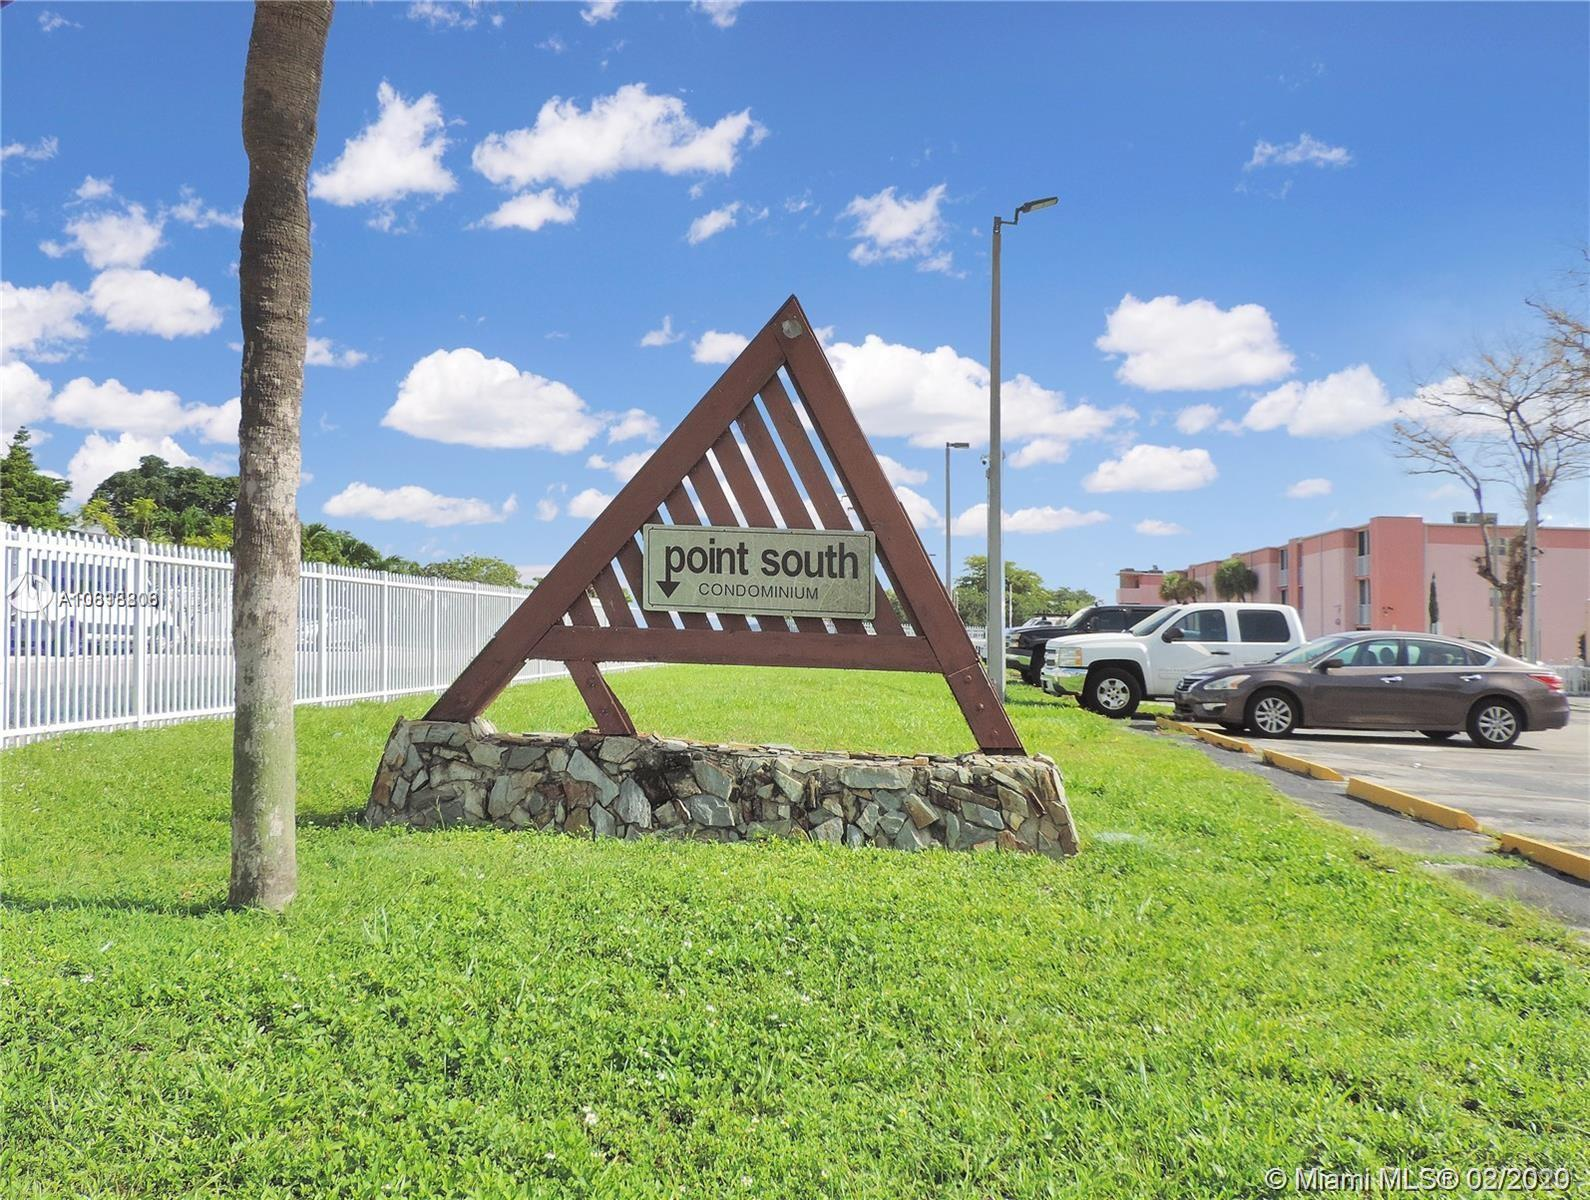 Nice apartment with 2 large bedrooms, this unit is very spacious, in a well maintained building, gated community and very quiet, very close to US1, easy access to the Turpinke. Close to the south mall, walmart, supermarkets, banks and schools.